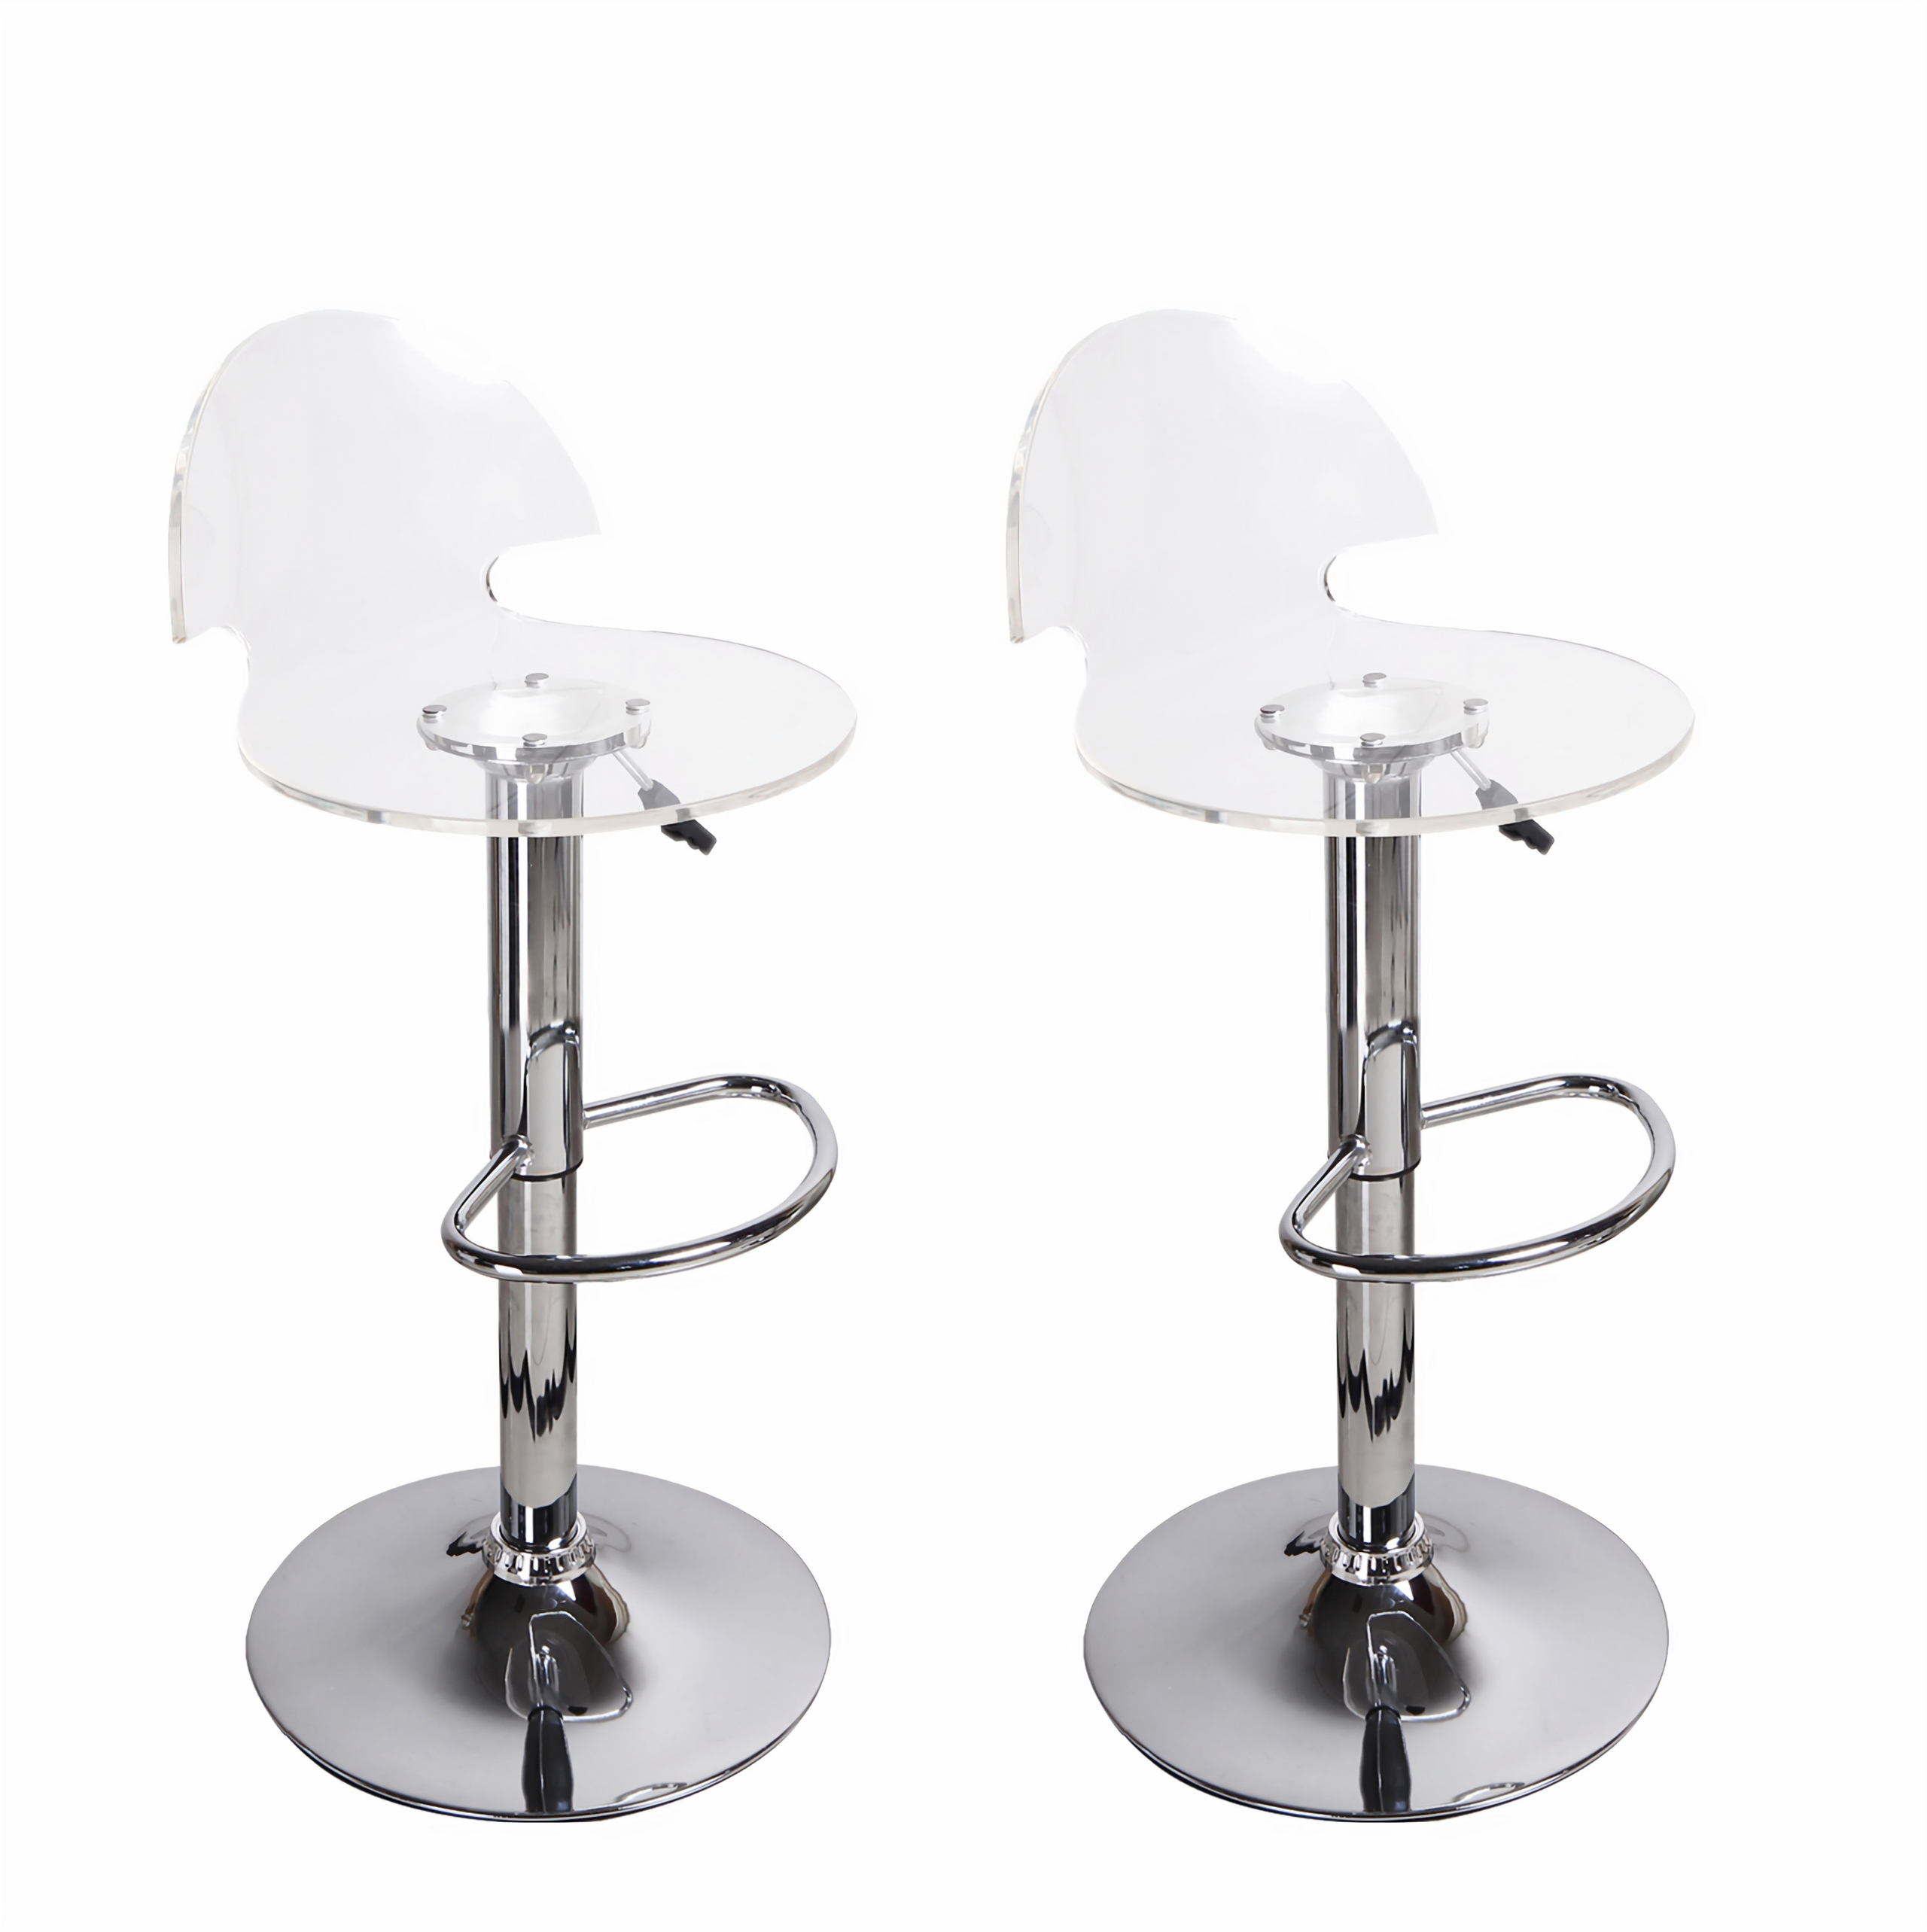 Superieur Adeco [CH0024] Transparent Hydraulic Lift Adjustable Barstool Chairs (Set  Of 2),